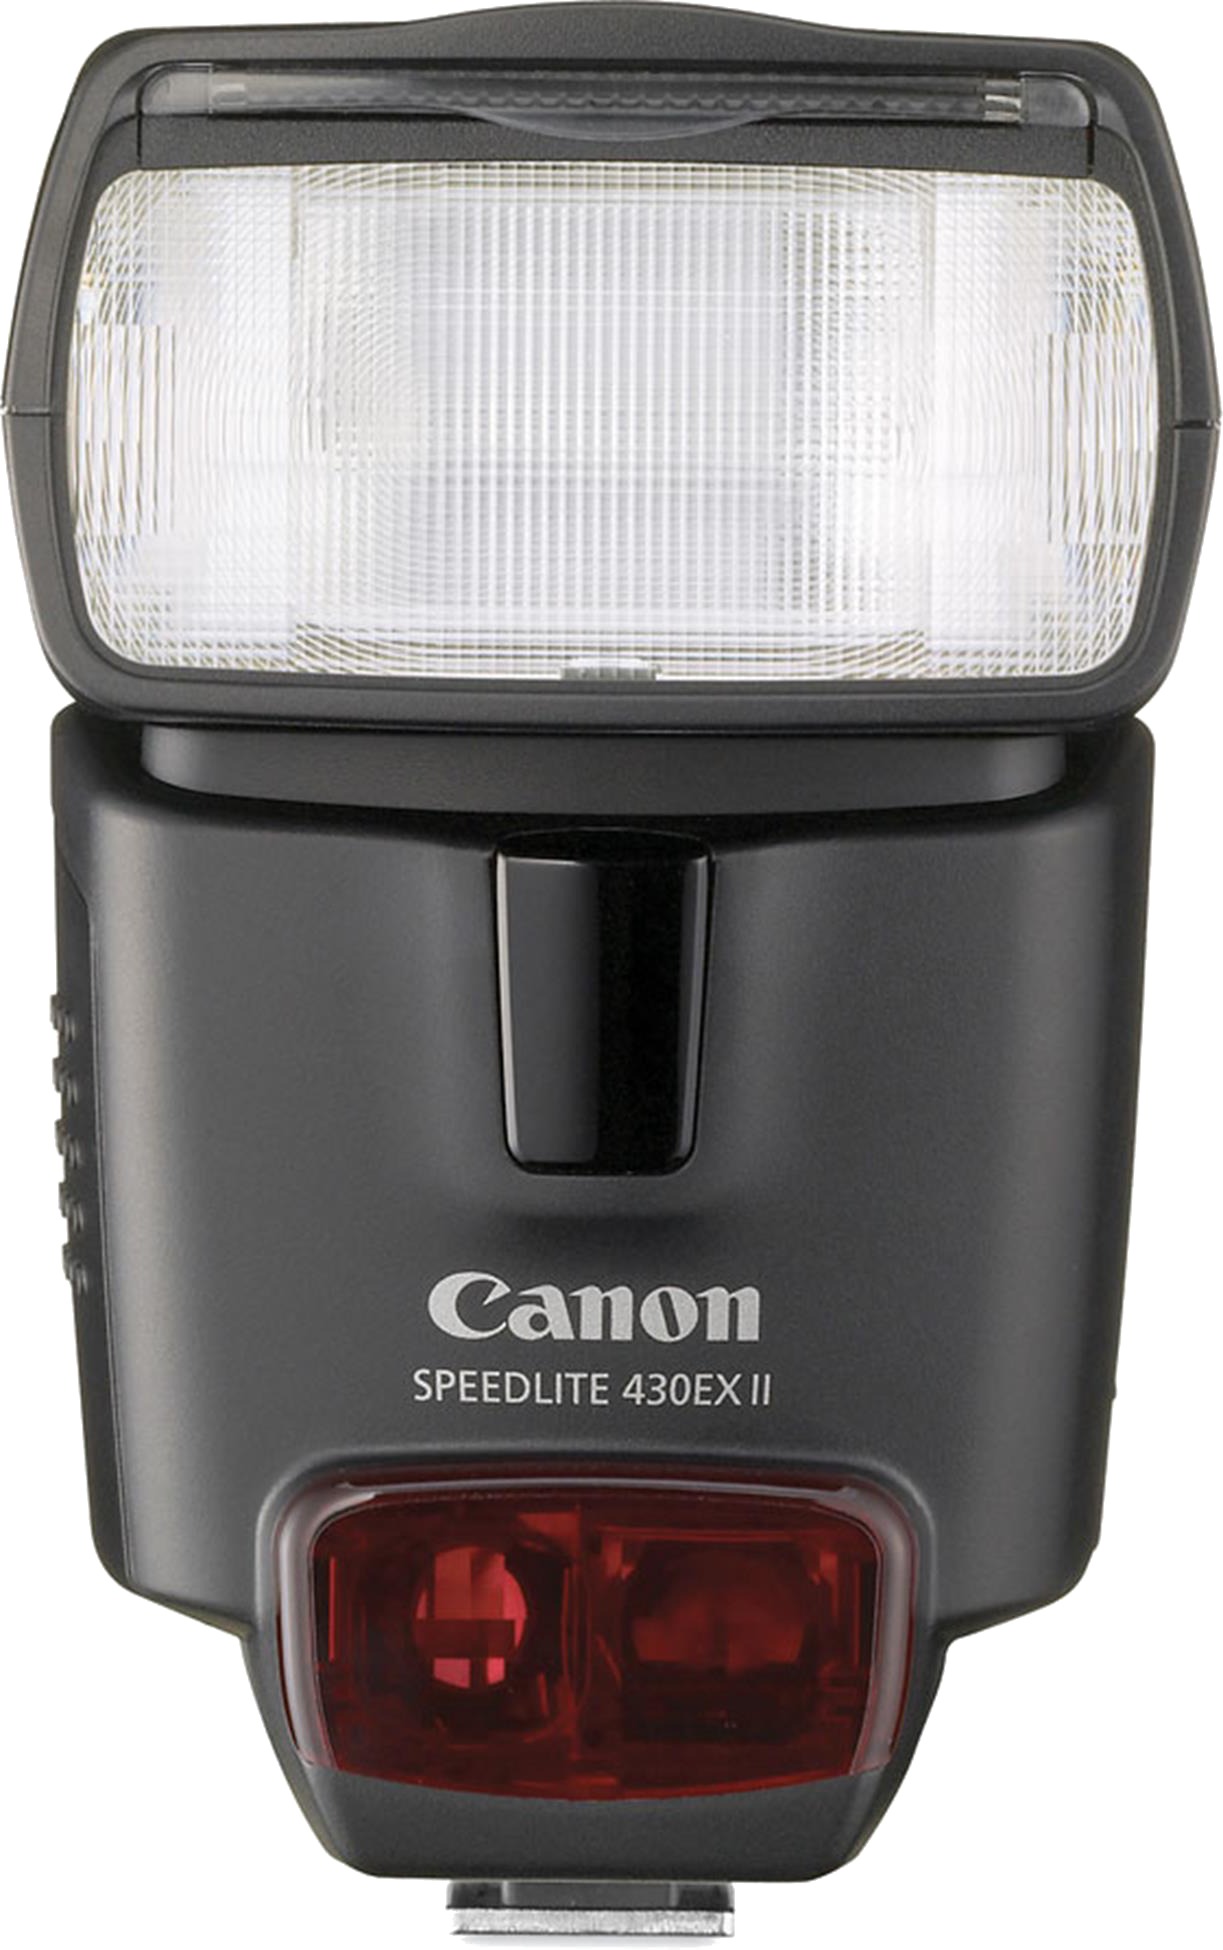 A mid level flash from Canon.